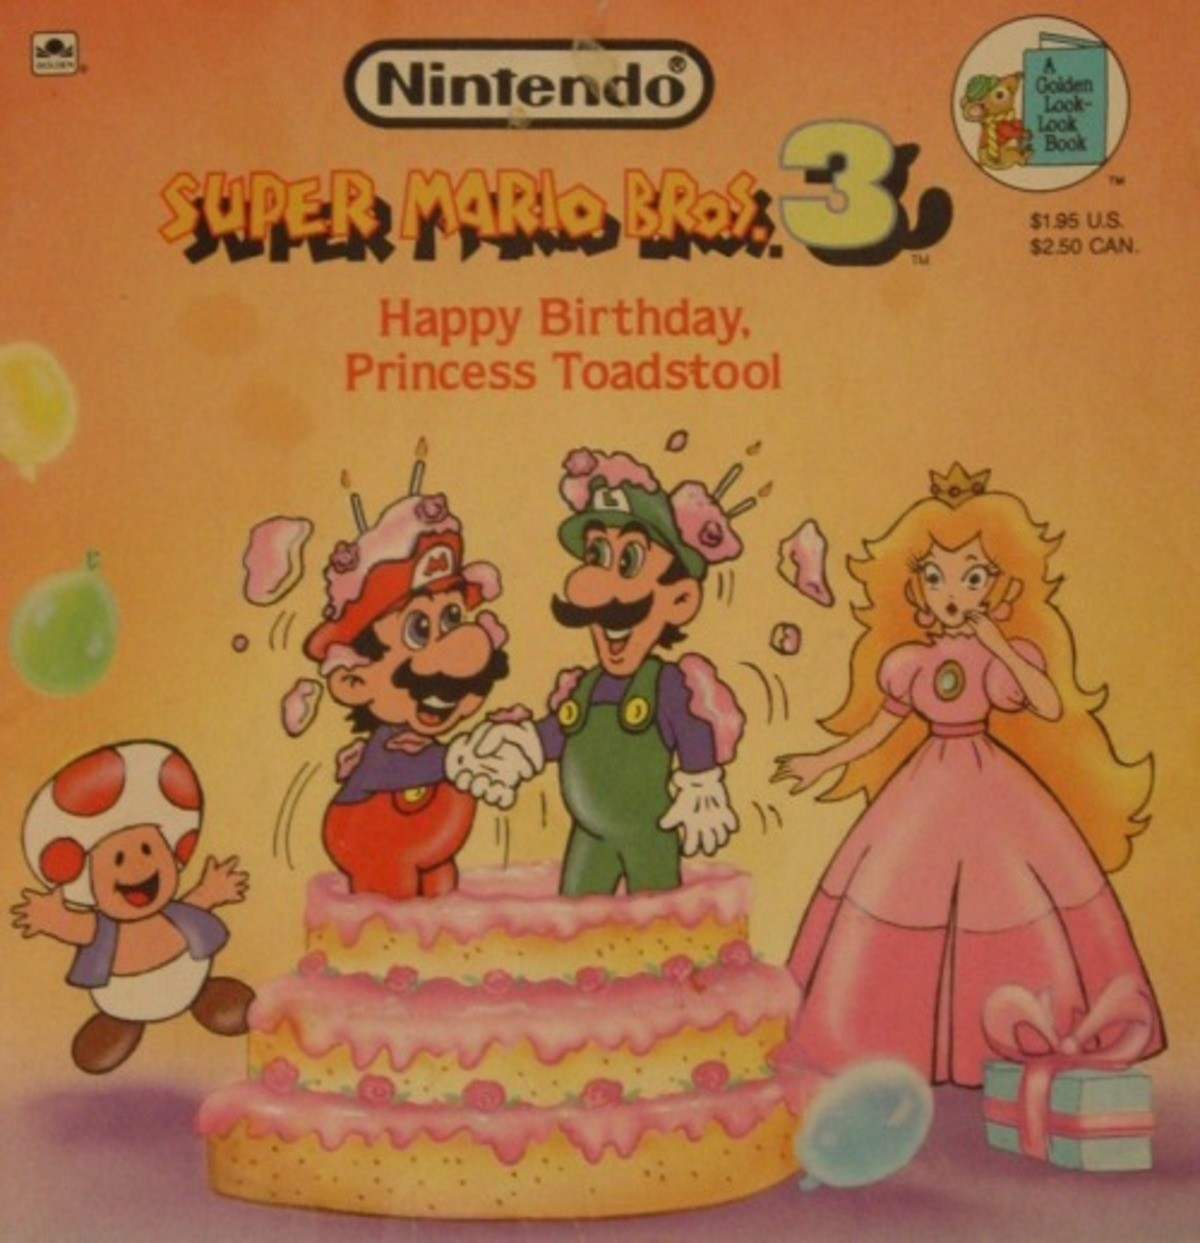 Princess Toadstool's Birthday. .. Holy the Super Mario kids books are taking me back to 1st grade silent reading.